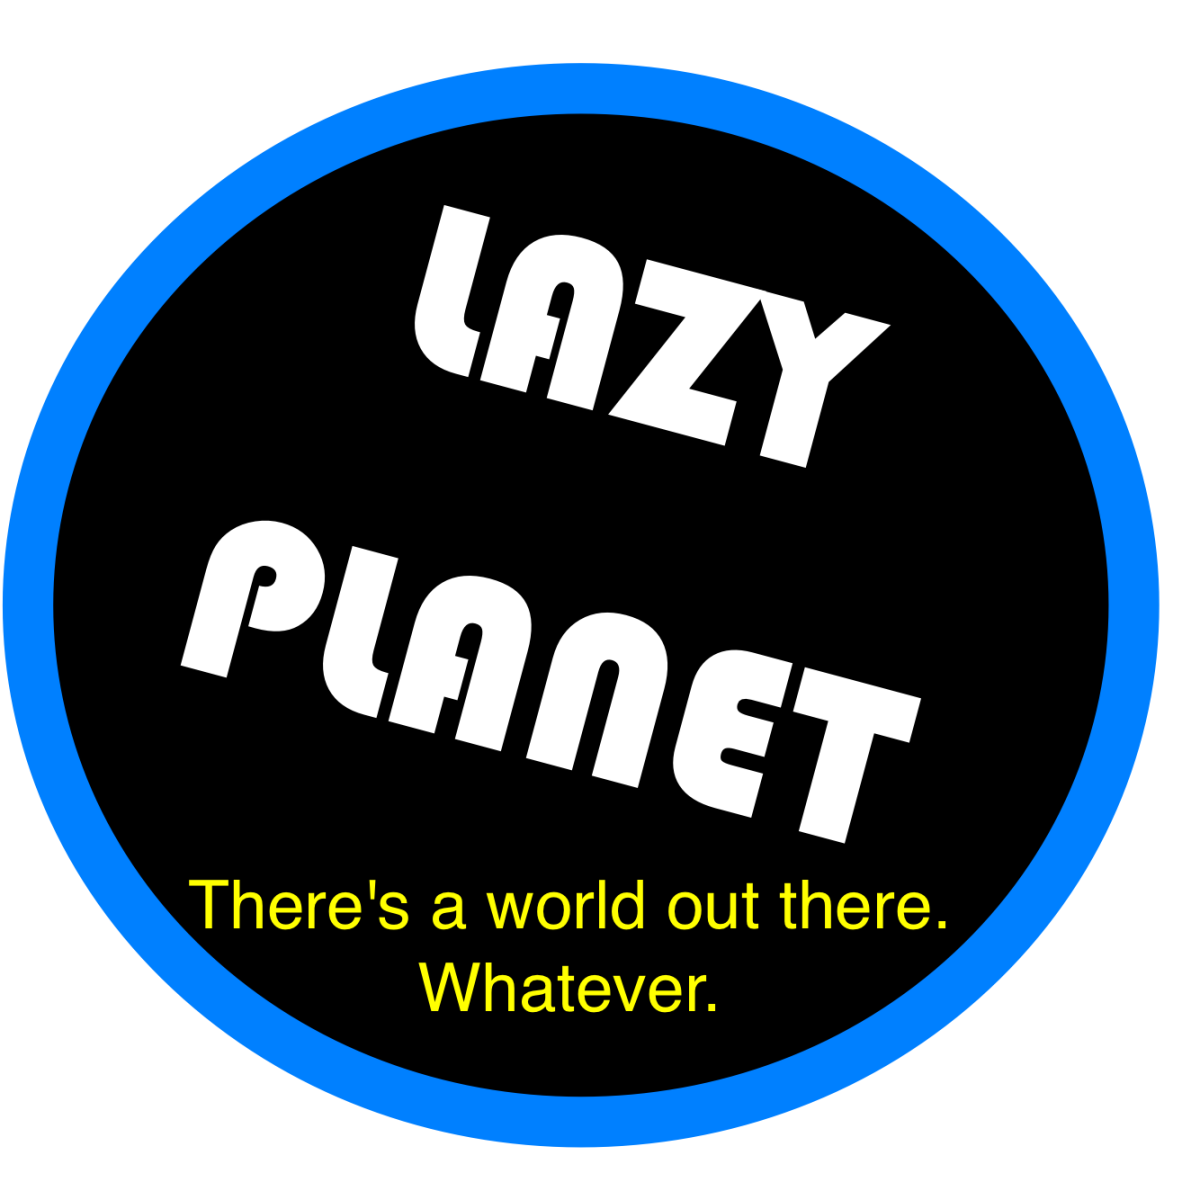 Visit the Lazy Planet